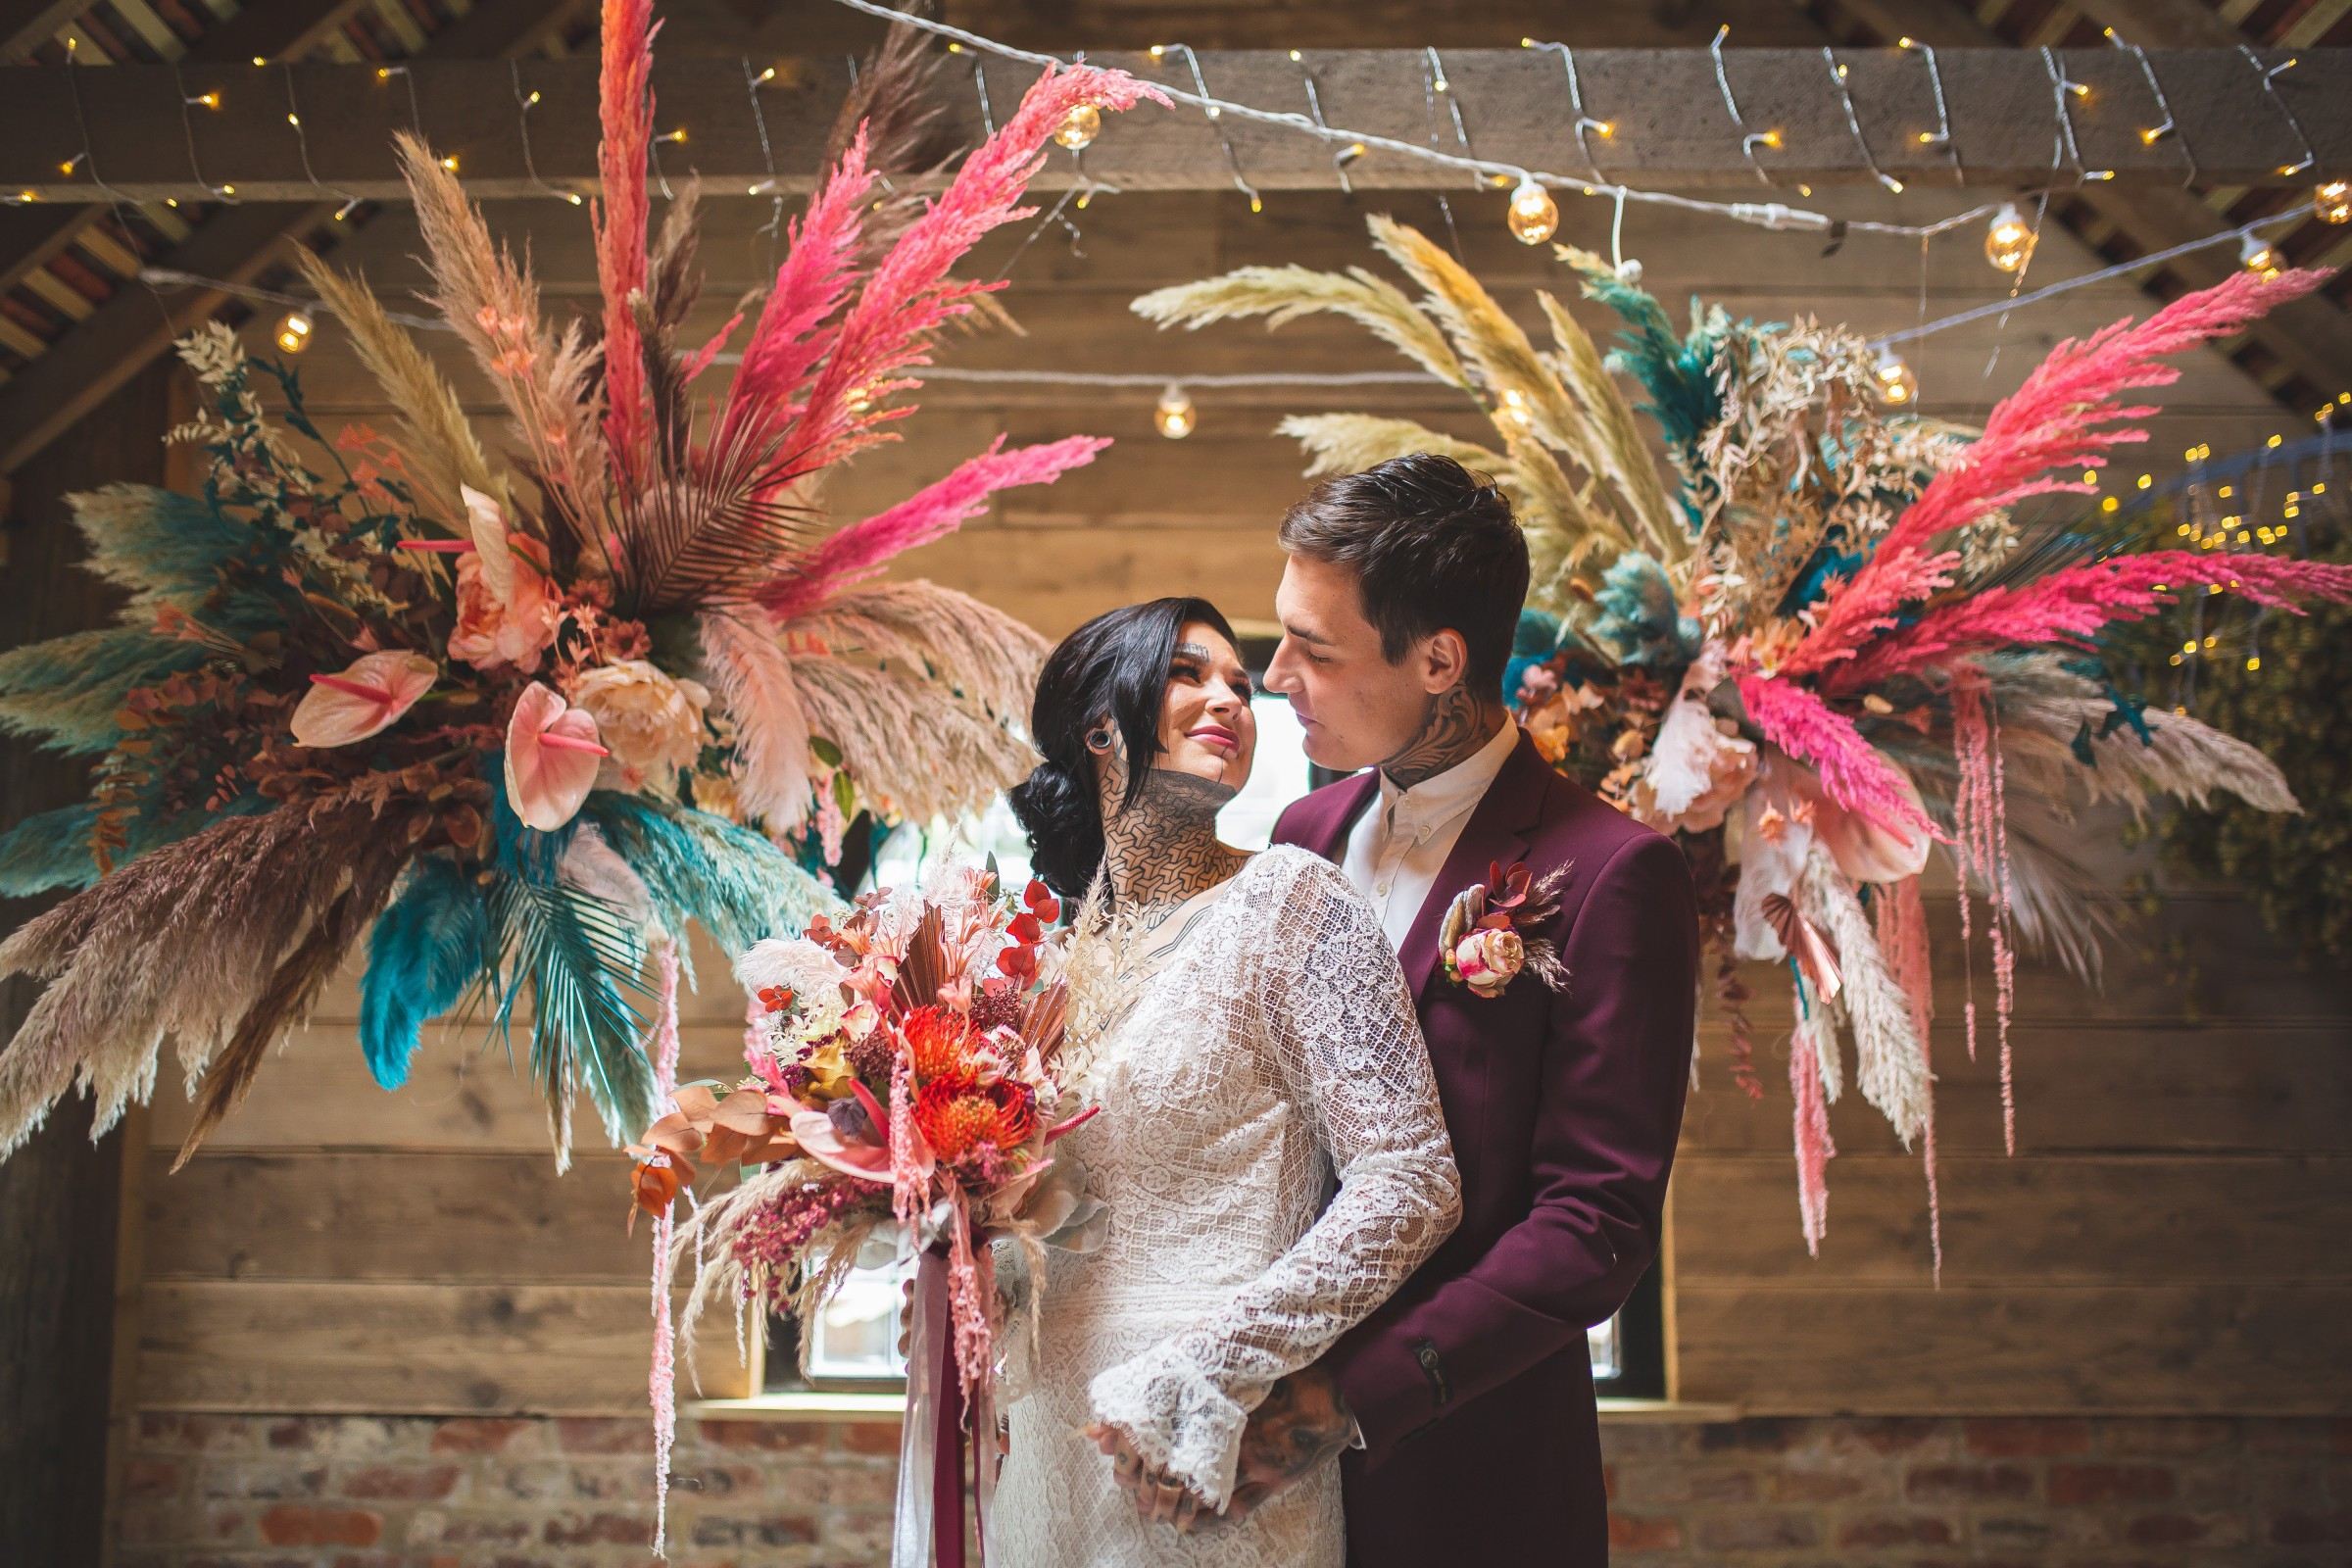 unique barn wedding - creative wedding styling - bright wedding - modern wedding - unique wedding flowers - colourful wedding flowers - alternative wedding - unconventional wedding